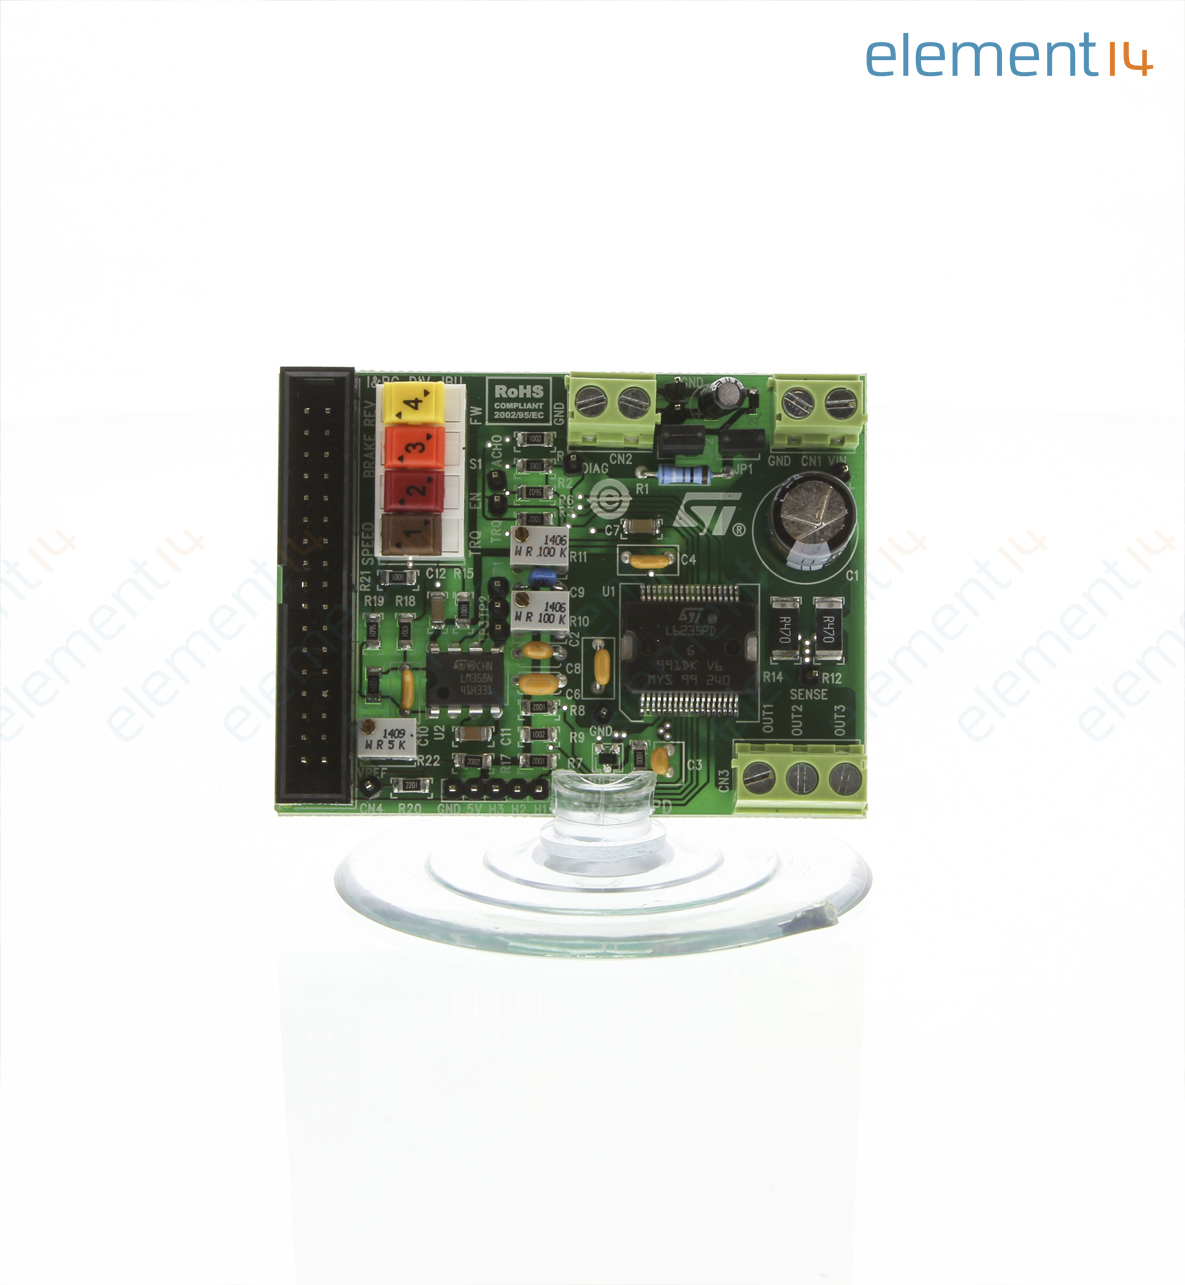 Eval6235pd Stmicroelectronics Demonstration Board Bldc Motor Brushless Electric Diagram A Threephase Dc With Driver 3 Phase L6235 Power Management 360 Add To Compare